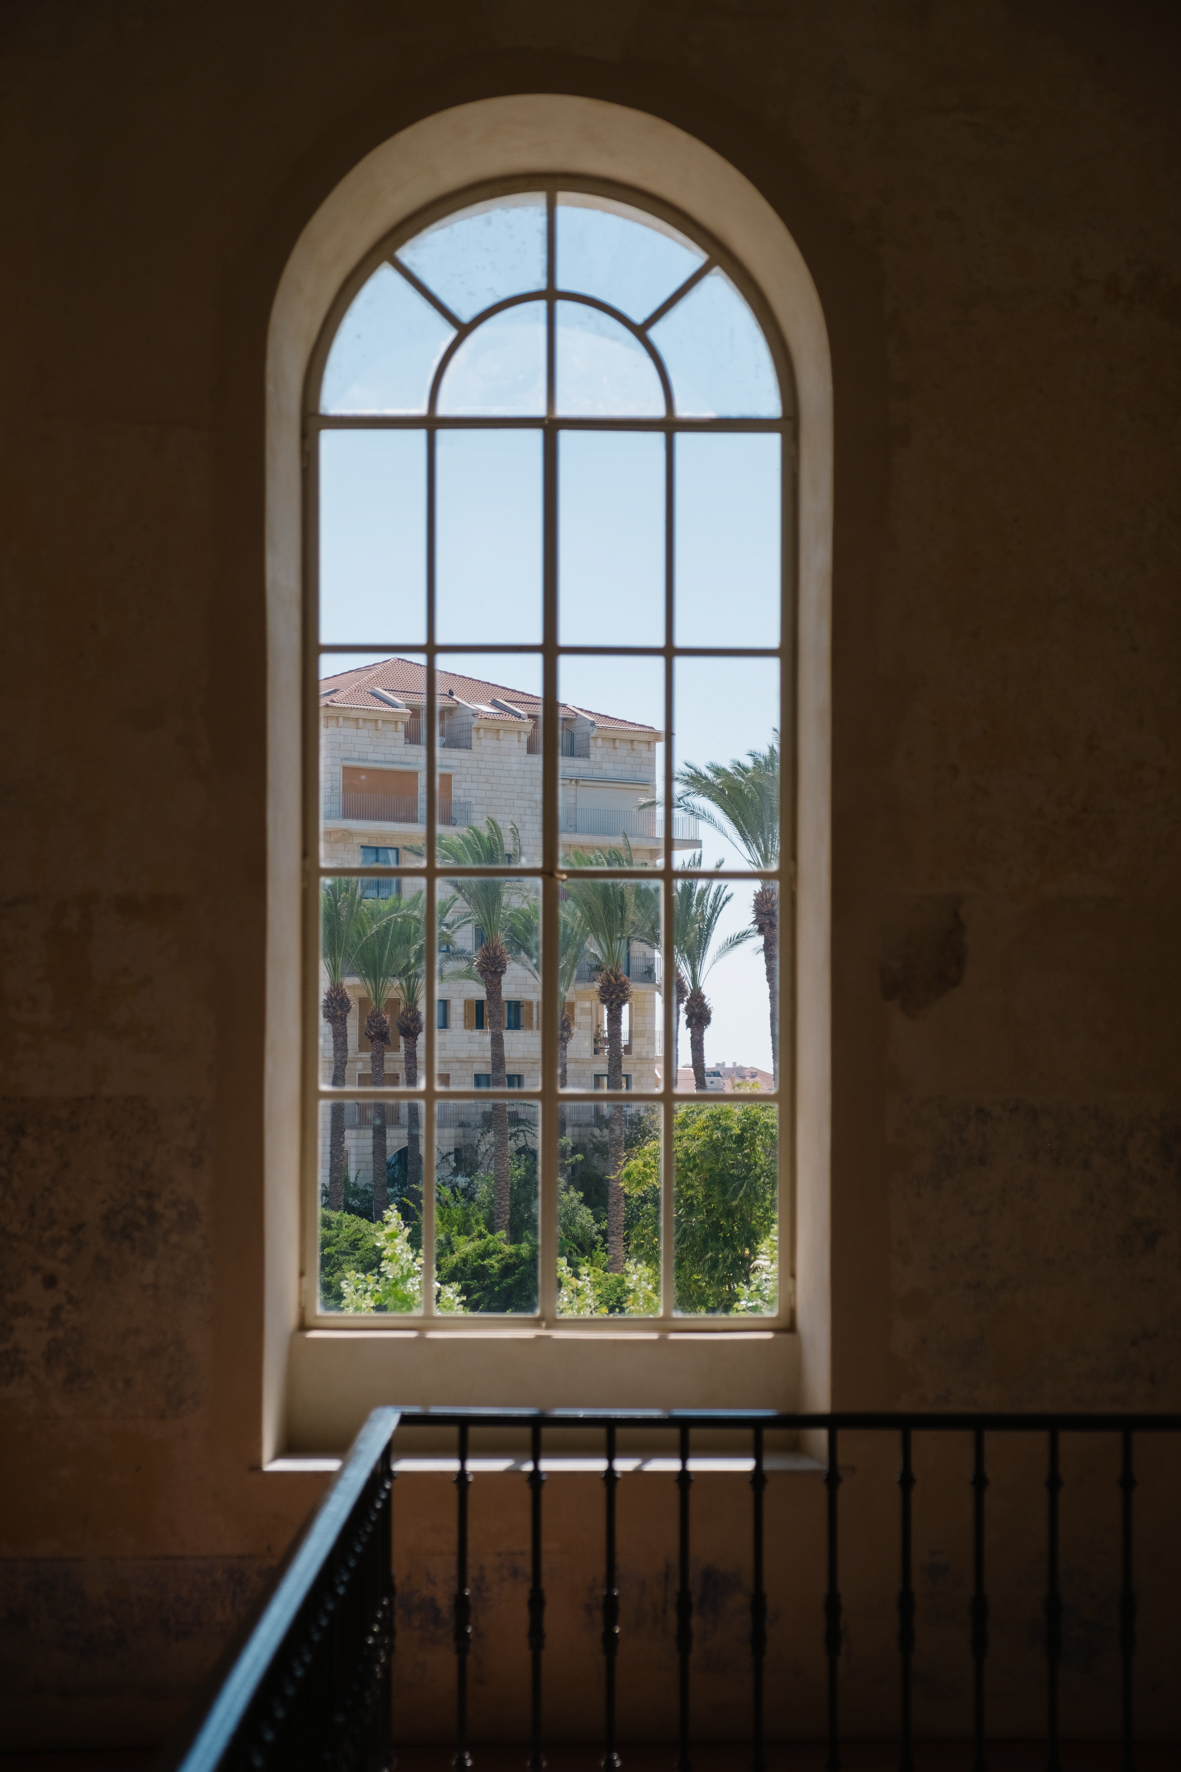 THE JAFFA HOTEL by VIA TOLILA